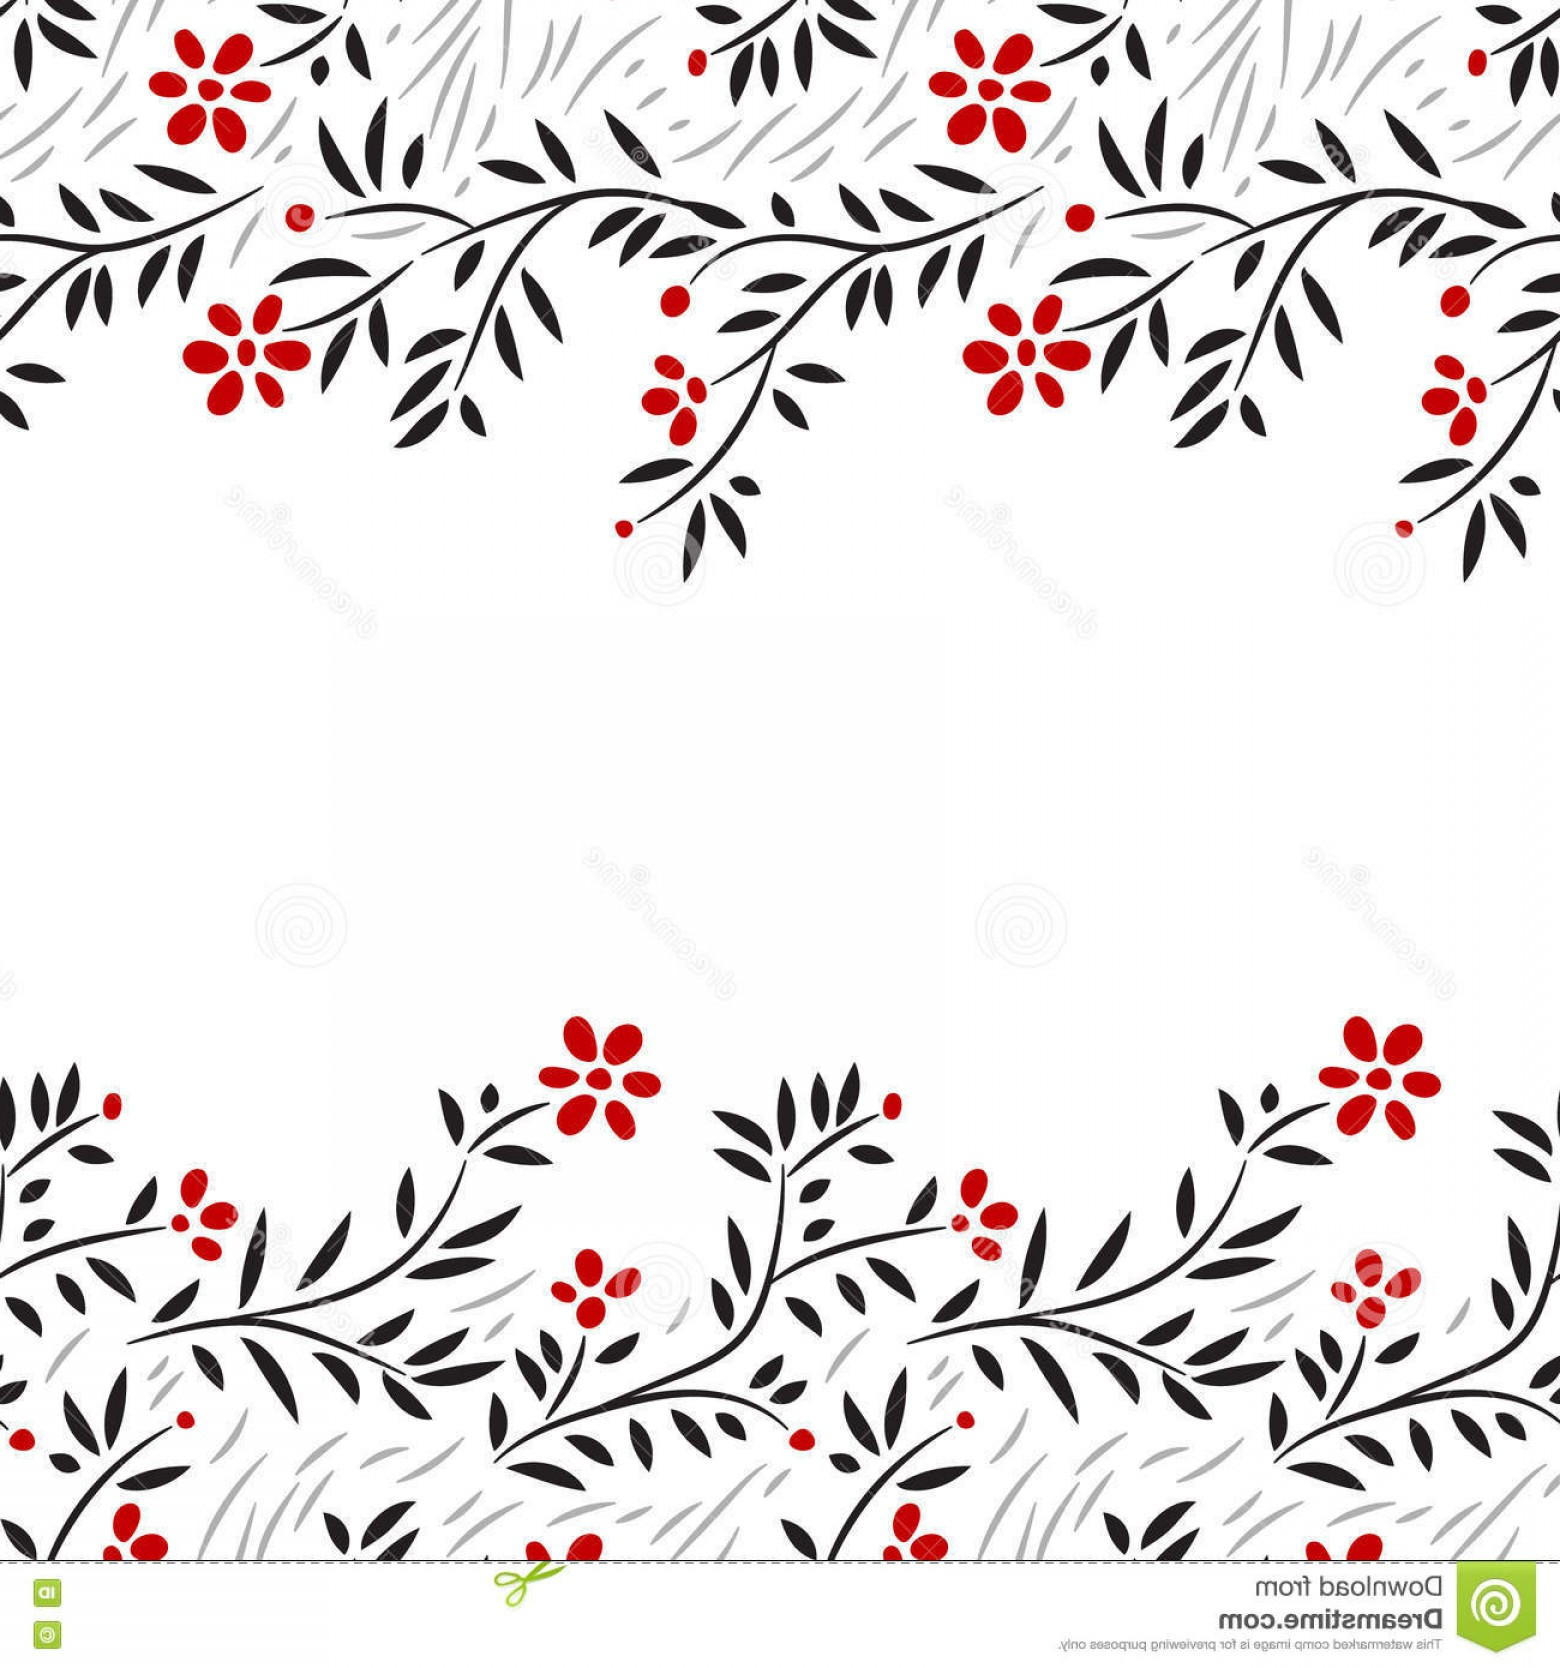 Red Black And White Vector Art: Stock Illustration Black White Red Flowers Horizontal Seamless Border White Vector Background Image